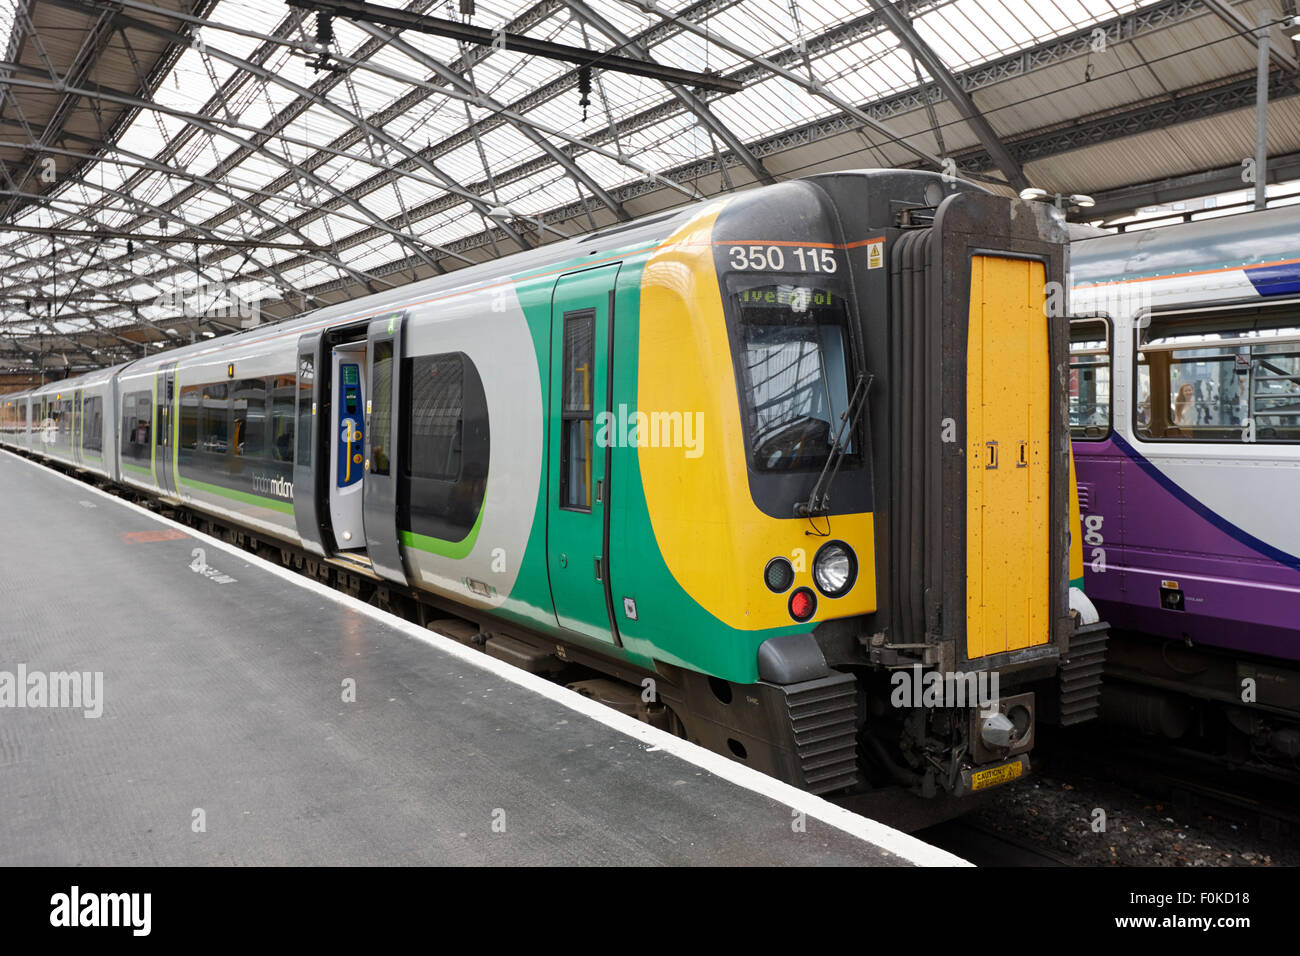 london midland train at Liverpool lime street station England UK - Stock Image